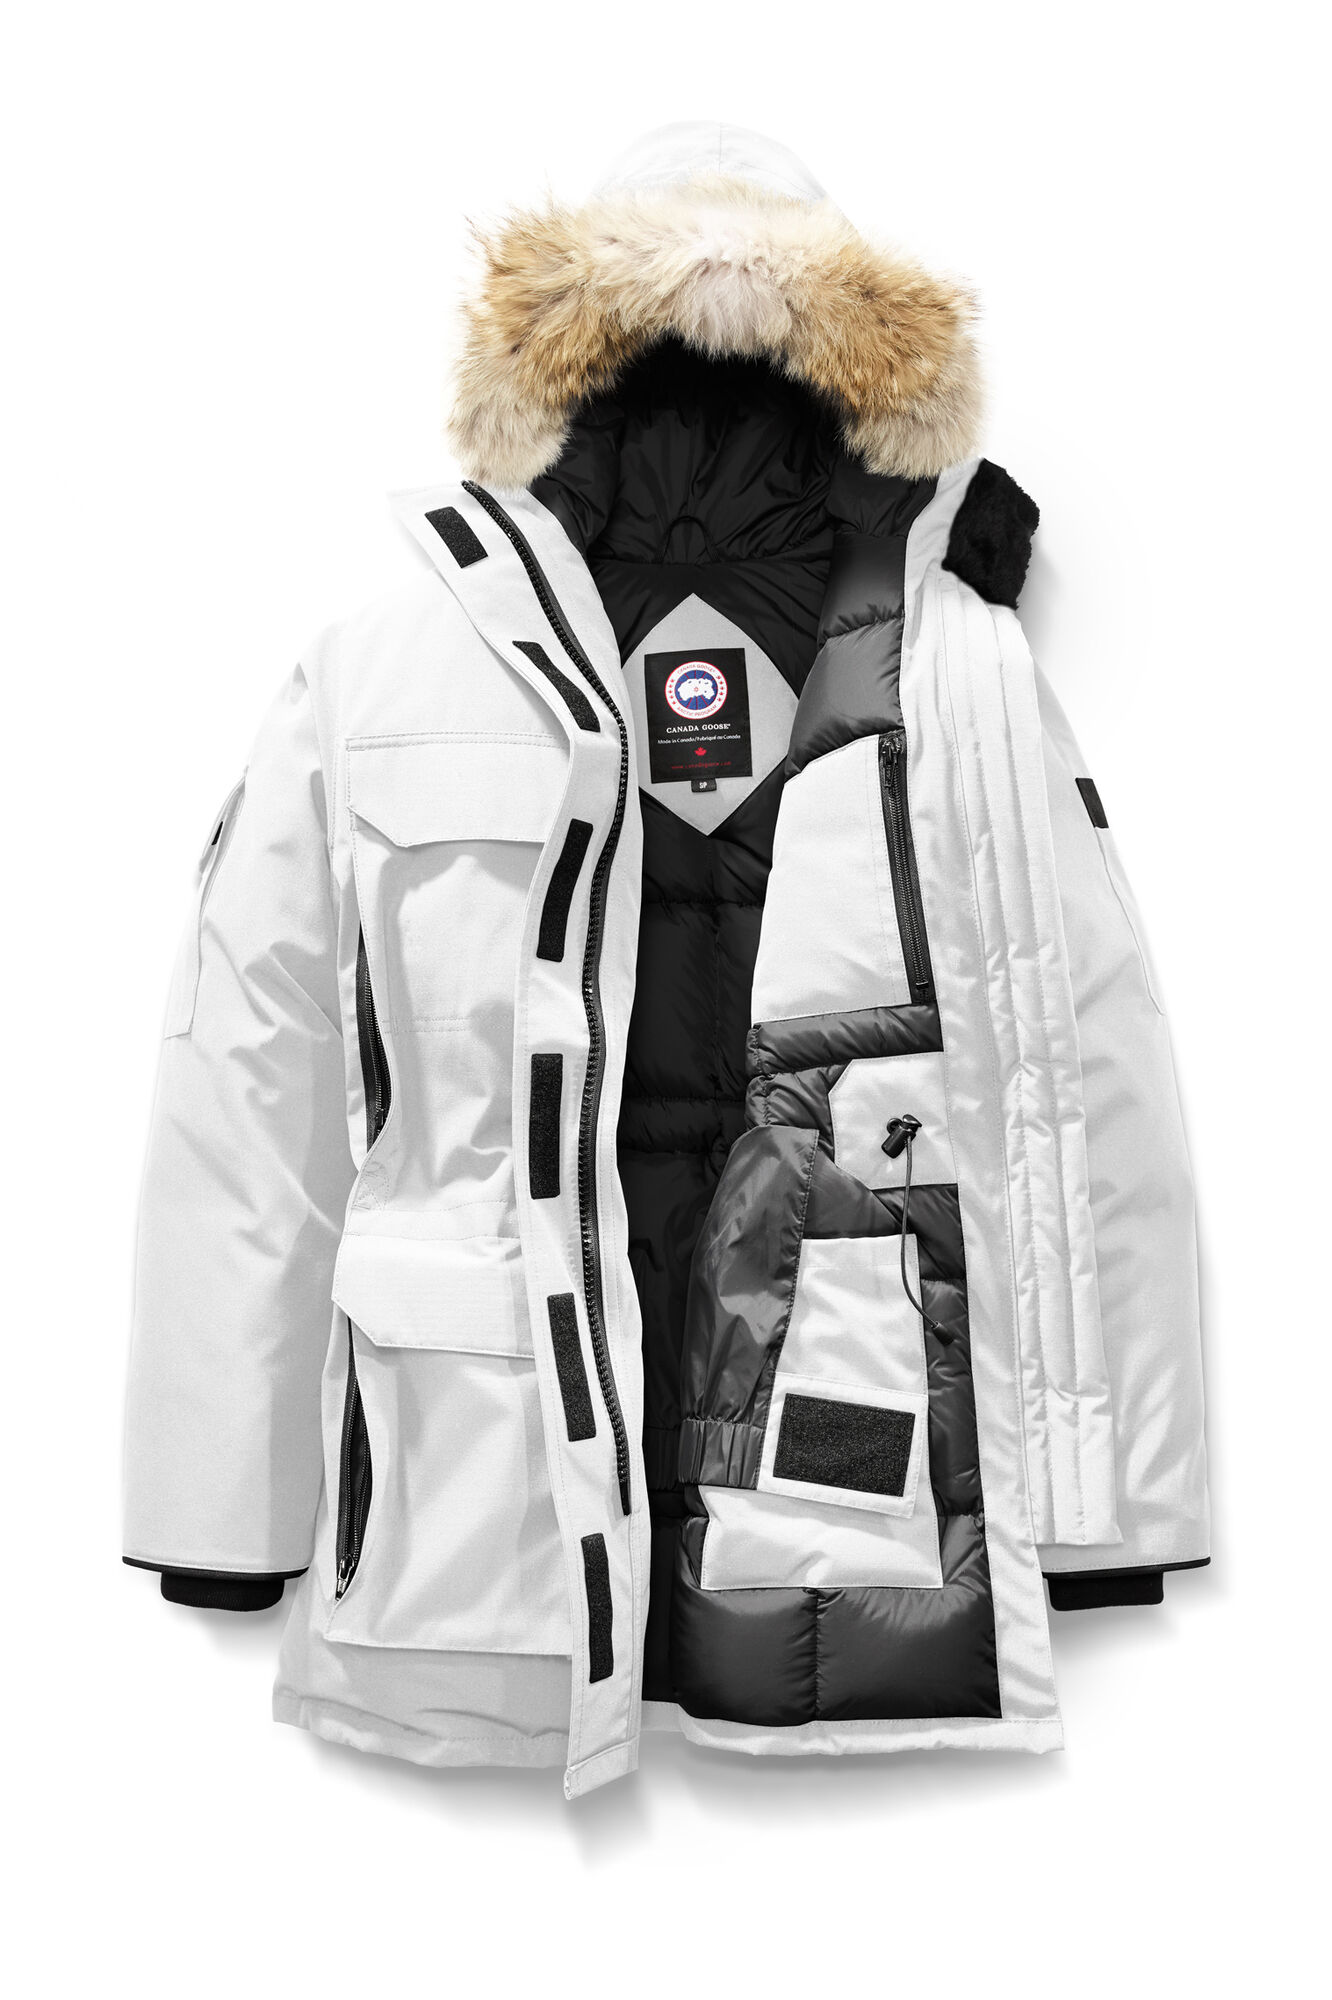 Canada Goose mens outlet shop - Women's Arctic Program Expedition Parka | Canada Goose?